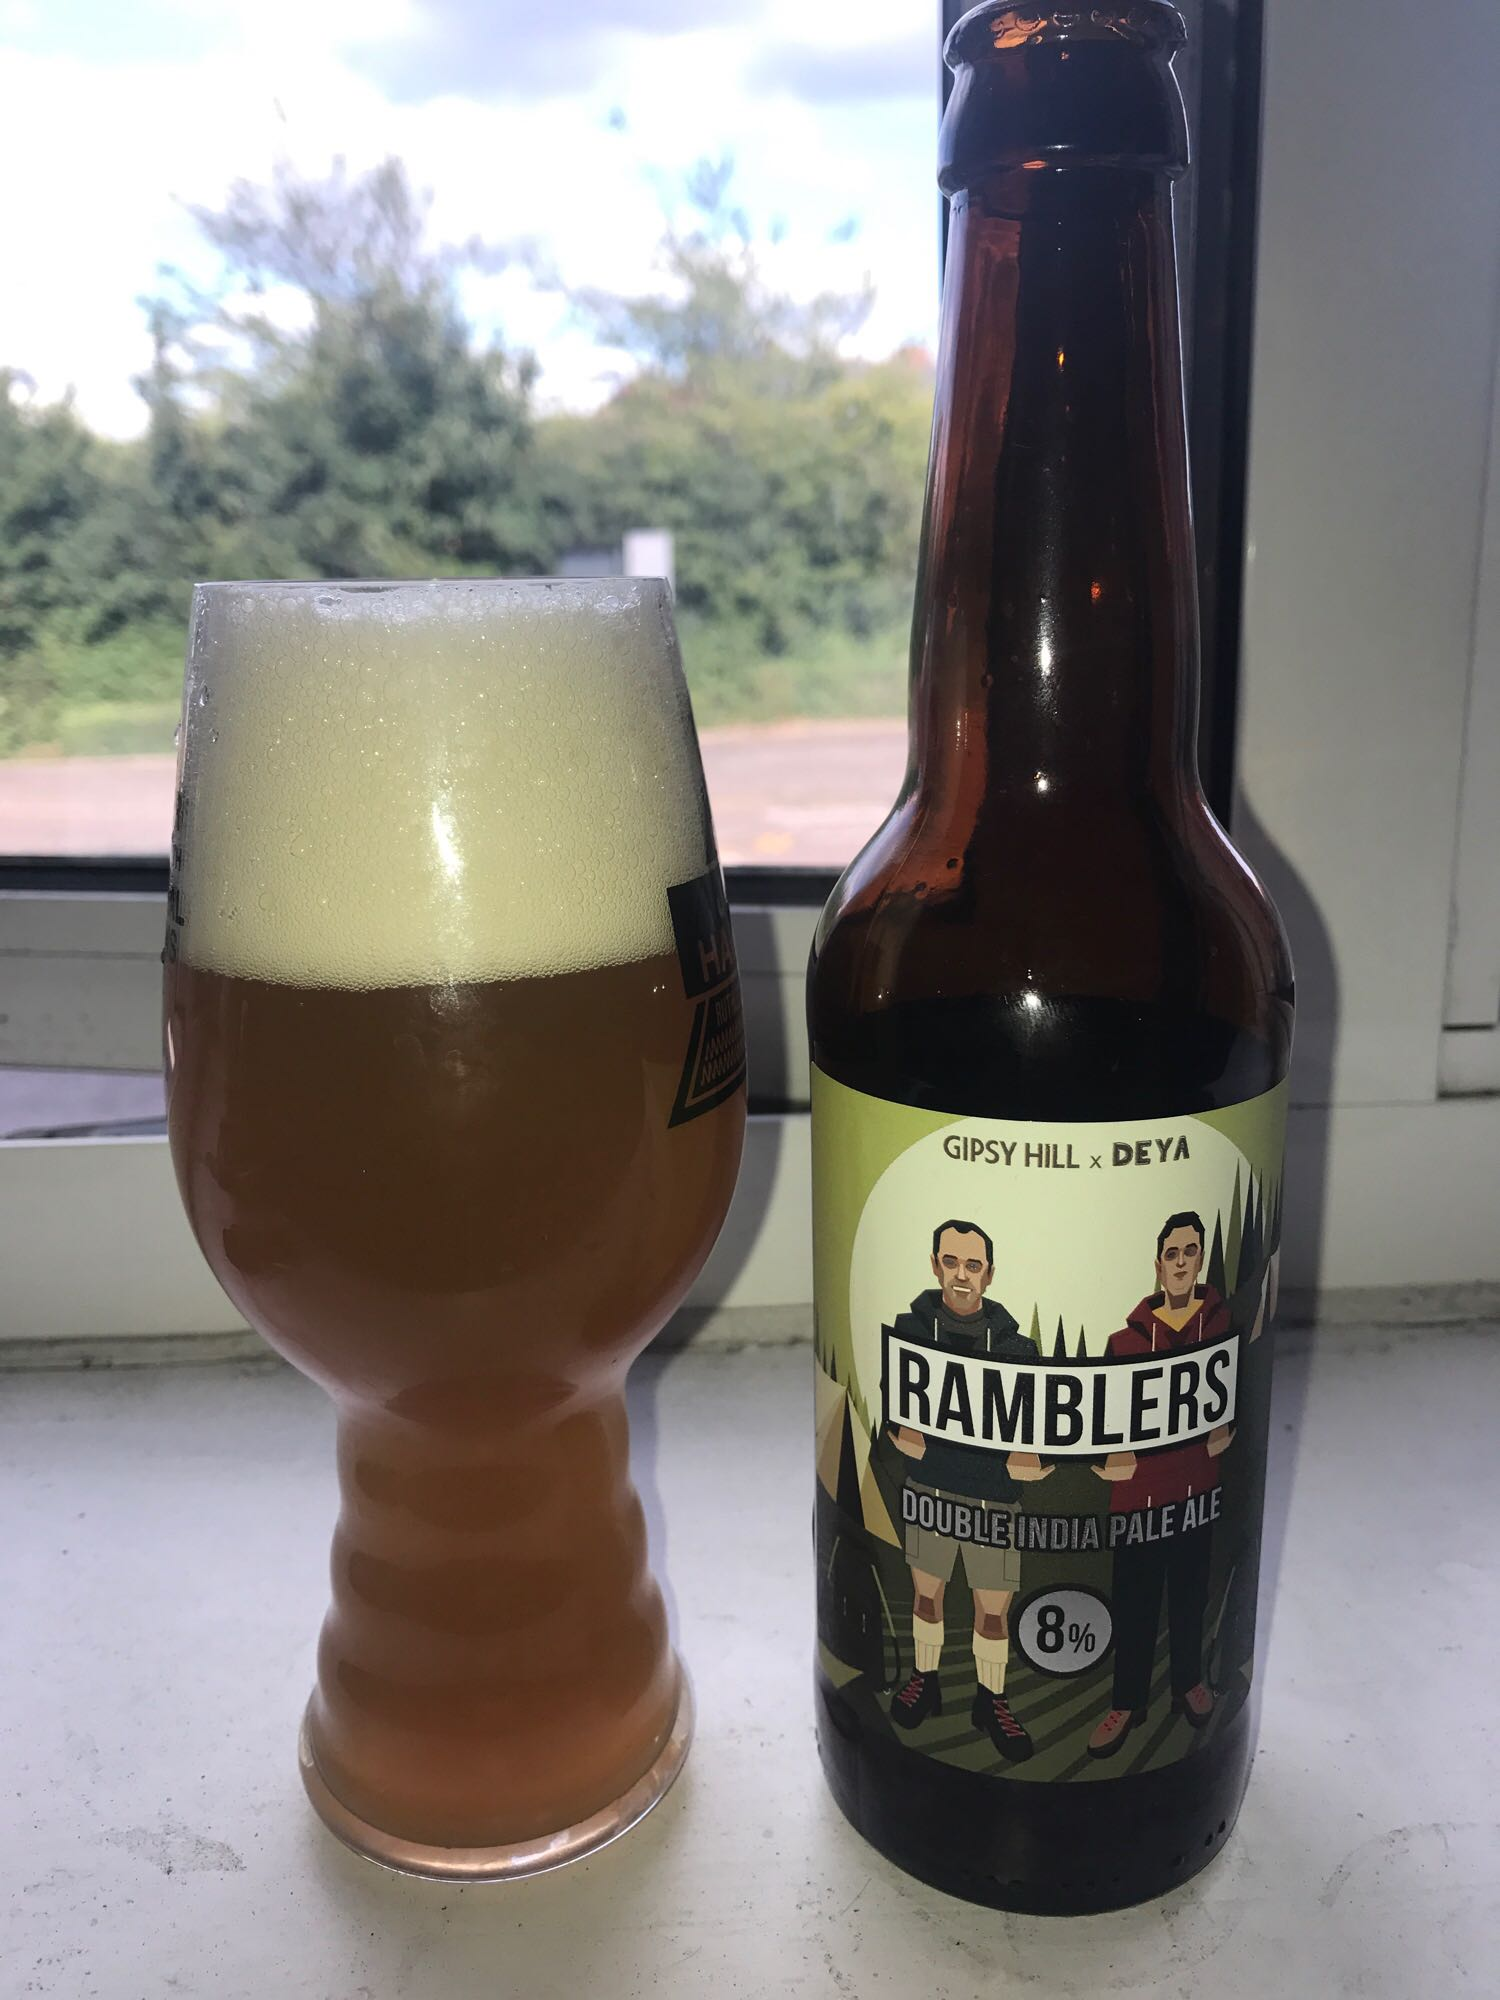 Ramblers - Double IPA 8% // Gipsy Hill Brewing Co. x DEYA Brewing Company - I tried to steer clear of picking too many DIPAs this month after the love-in in June but couldn't resist adding this collab between Gipsy Hill and DEYA. Thick and oaty, this was so smooth and had such a well-rounded flavour that, as much as I wanted to savour it, I had chinned it in a very short space of time. I just wish I'd bought several more bottles. DEYA are building themselves a nice little reputation for such a new brewery and I feel their influence on this beer is why it's so good. I've had several Gipsy Hill beers in the past and none have really struck me quite as much as this one has.